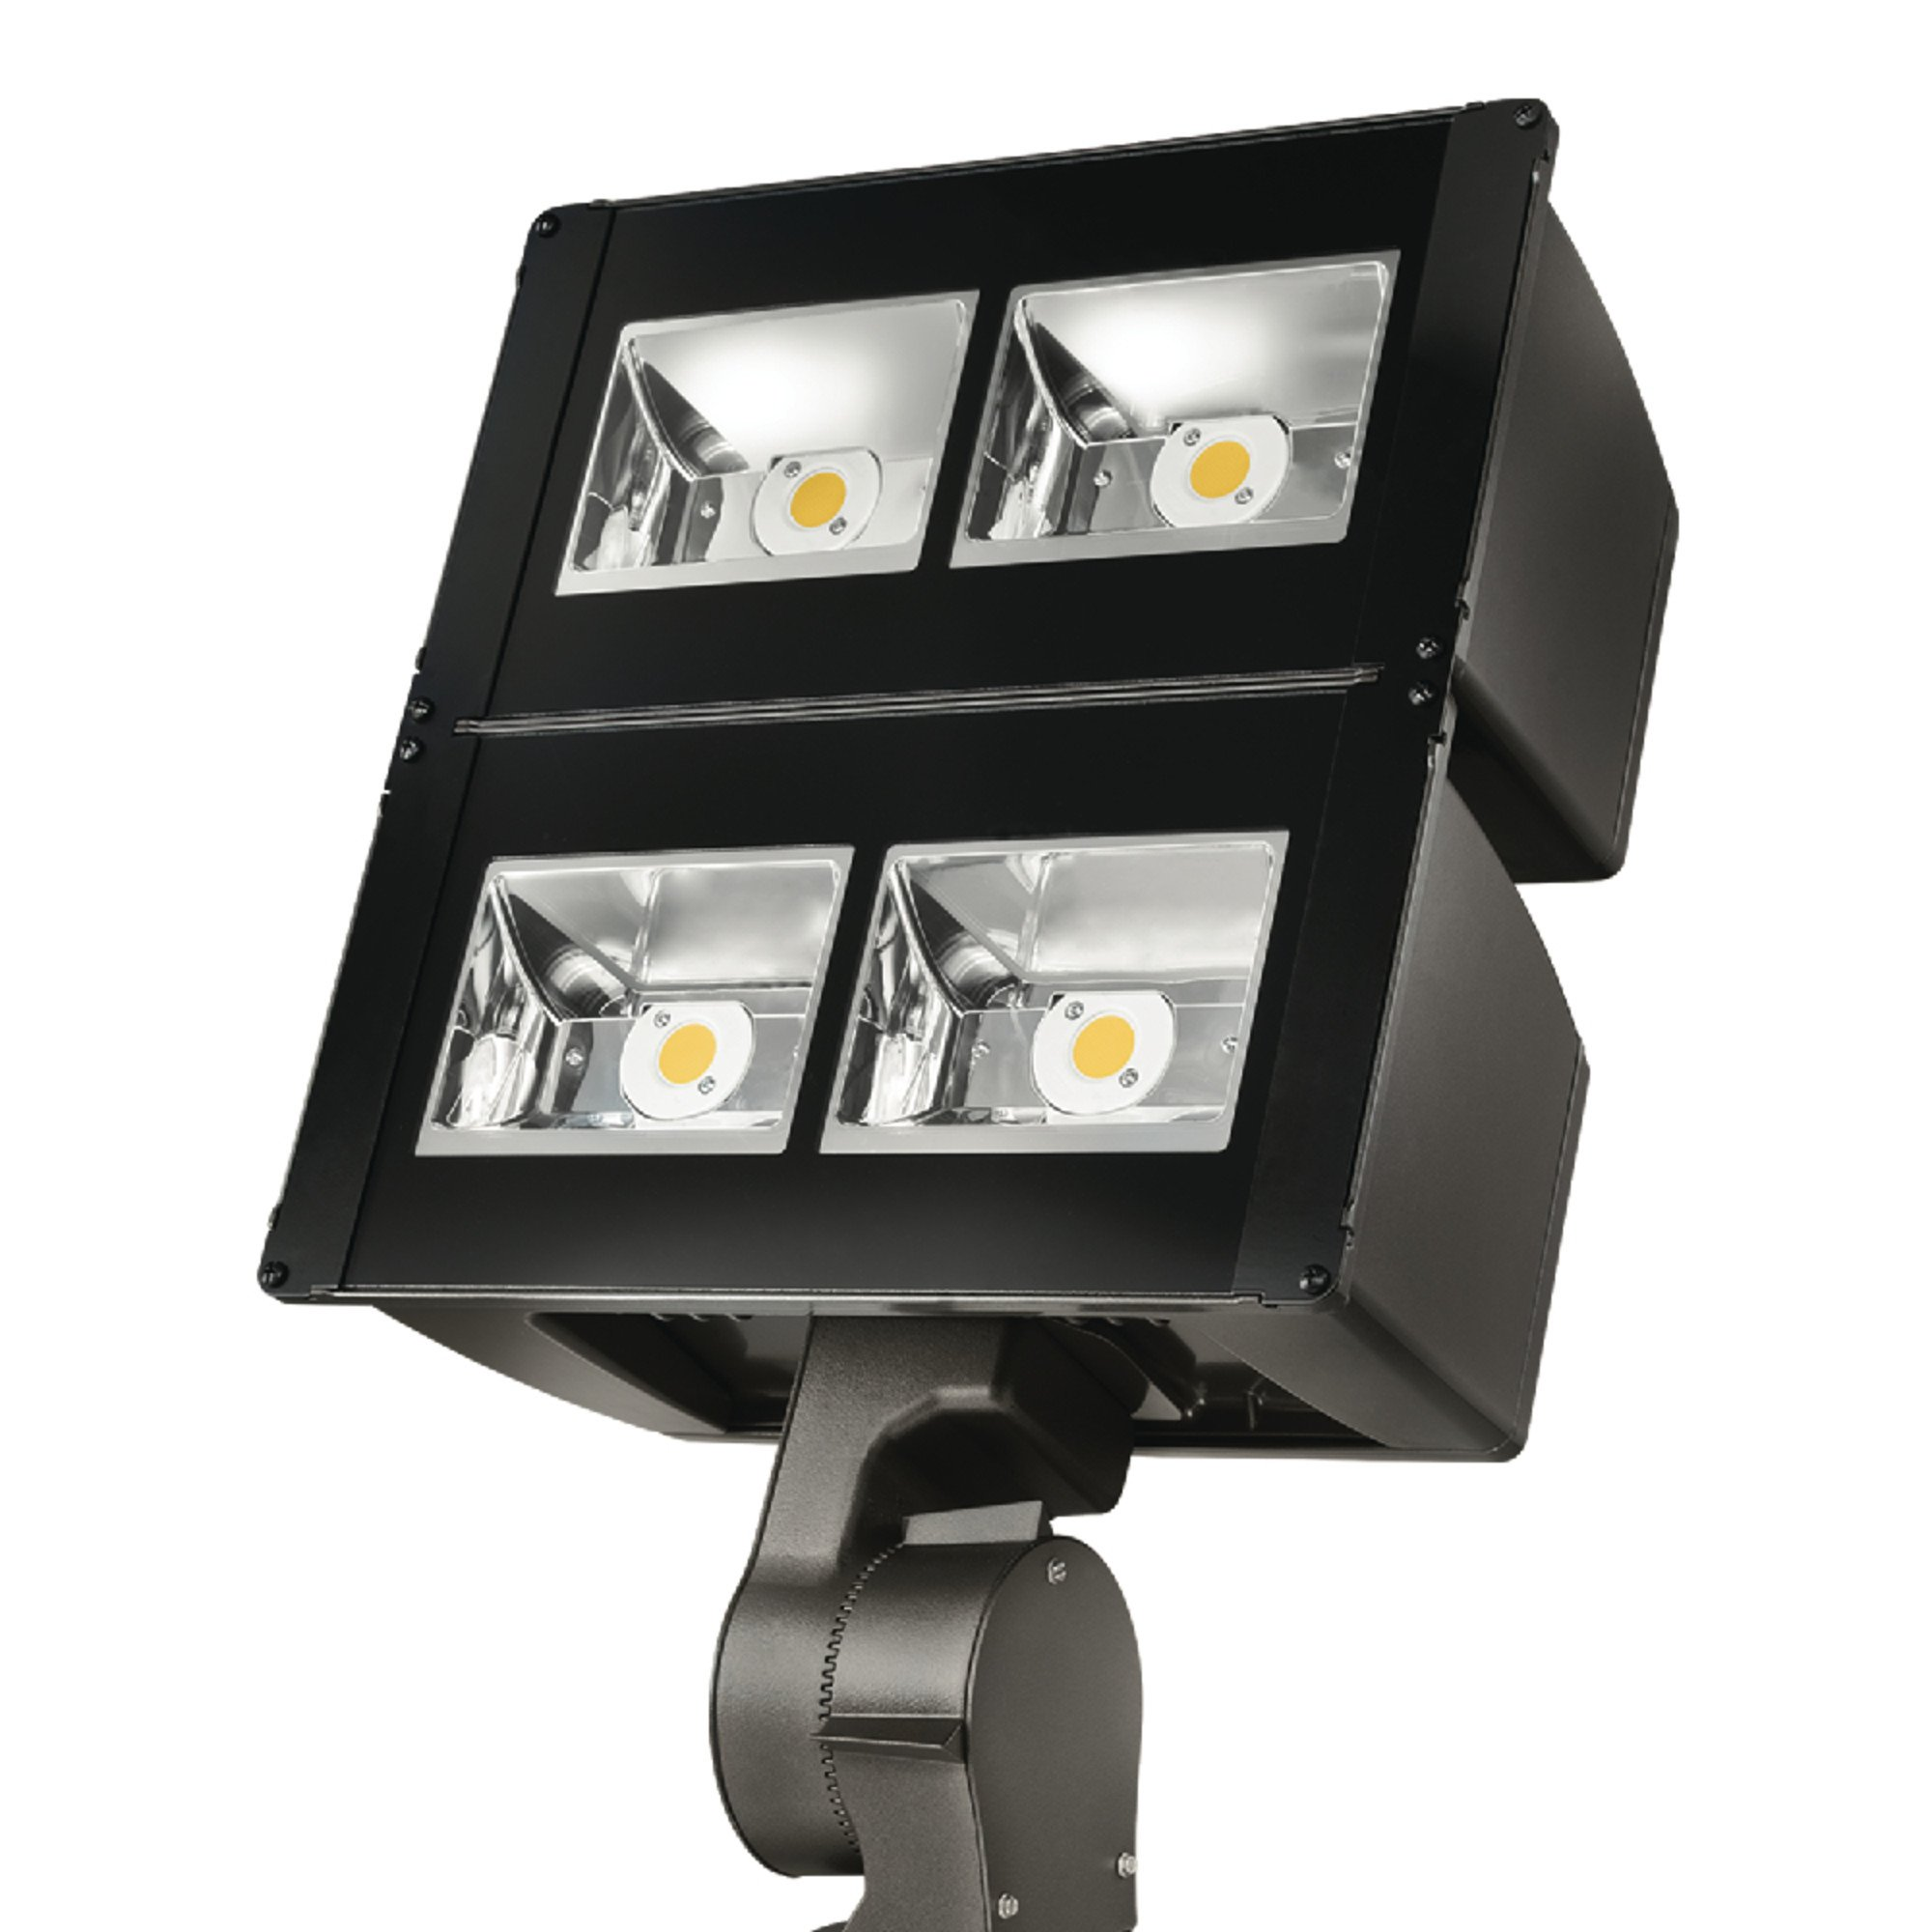 Lumark Nffld-L-C100-S Night Falcon 252W Carbon Outdoor Integrated LED Area Light with Slipfitter Mounting, Bronze